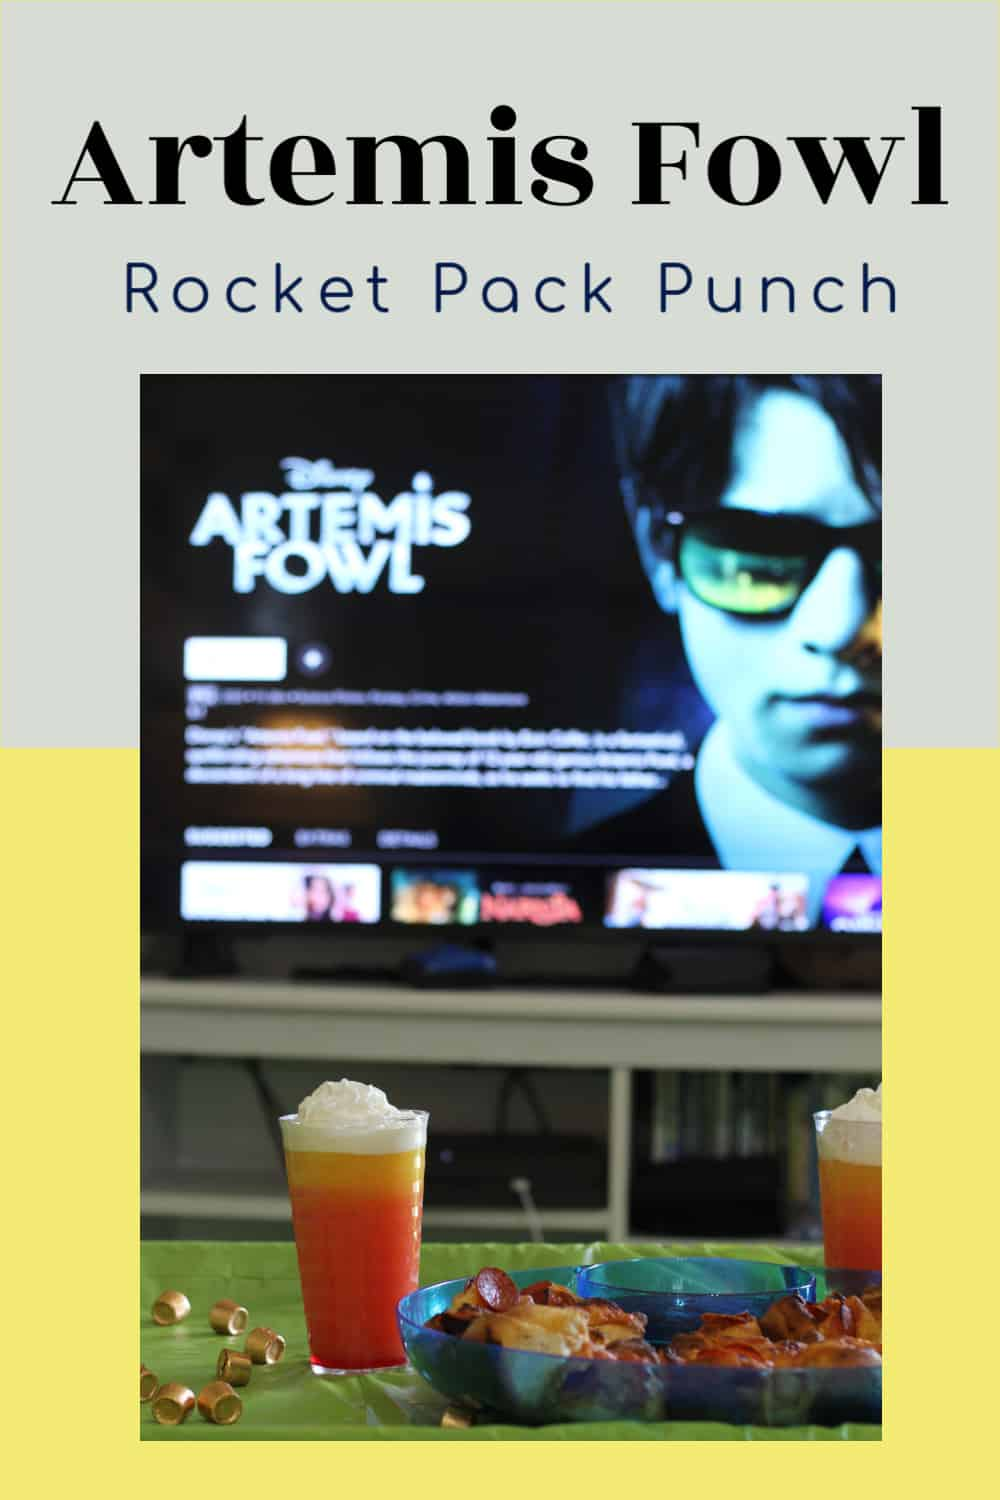 Artemis Fowl Rocket Pack Punch for an Artemis Fowl movie night. Perfect drink for a movie night or just because. Even better, this is and easy recipe that only uses 4 ingredients!